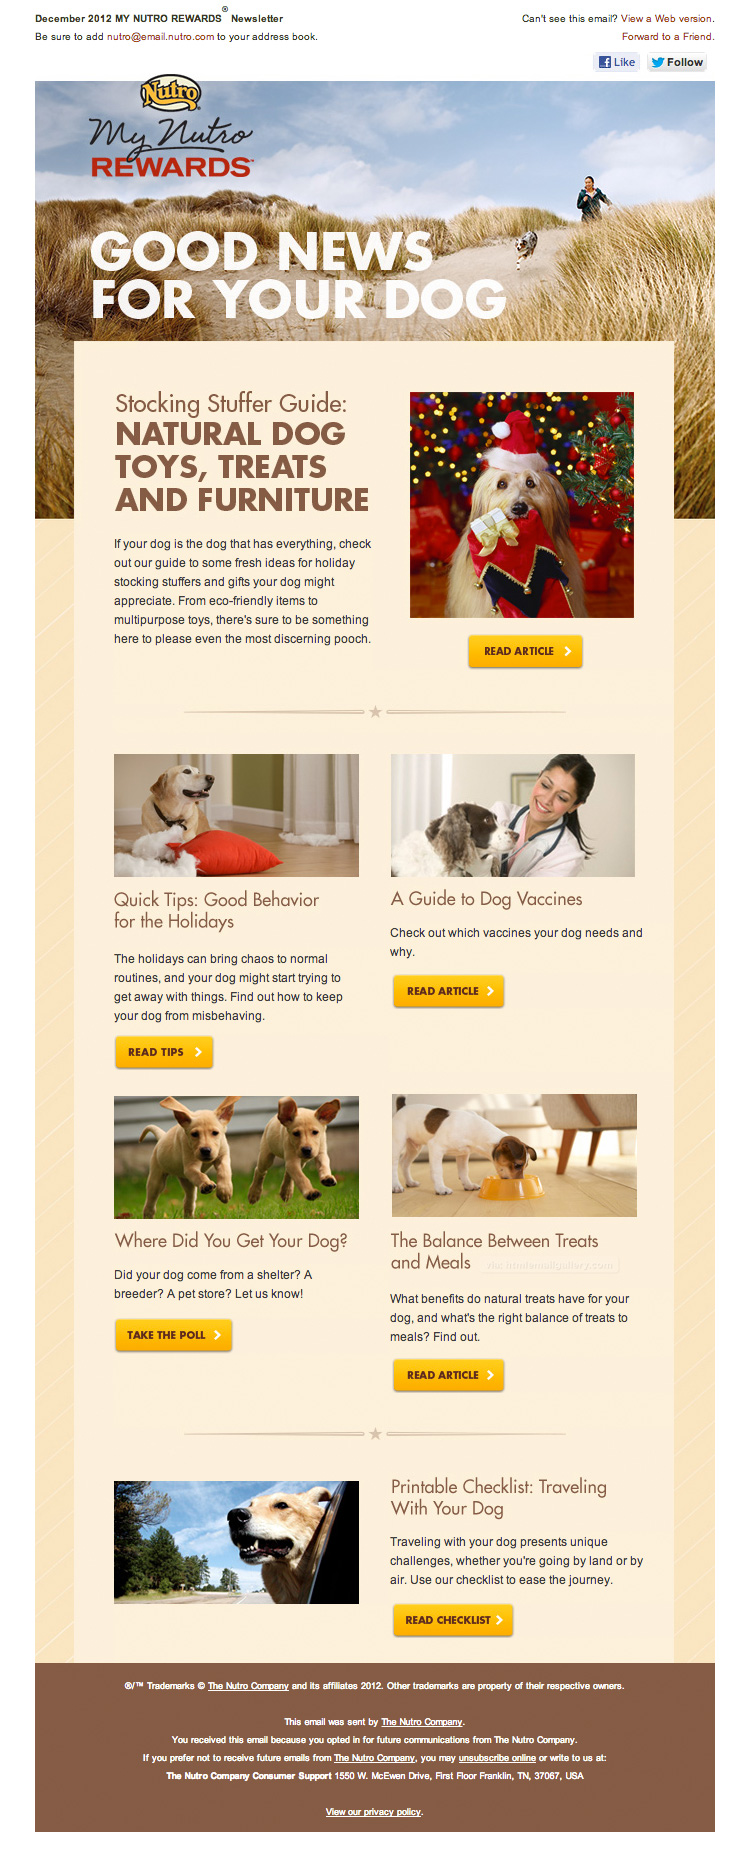 Good News for Your Dogs email